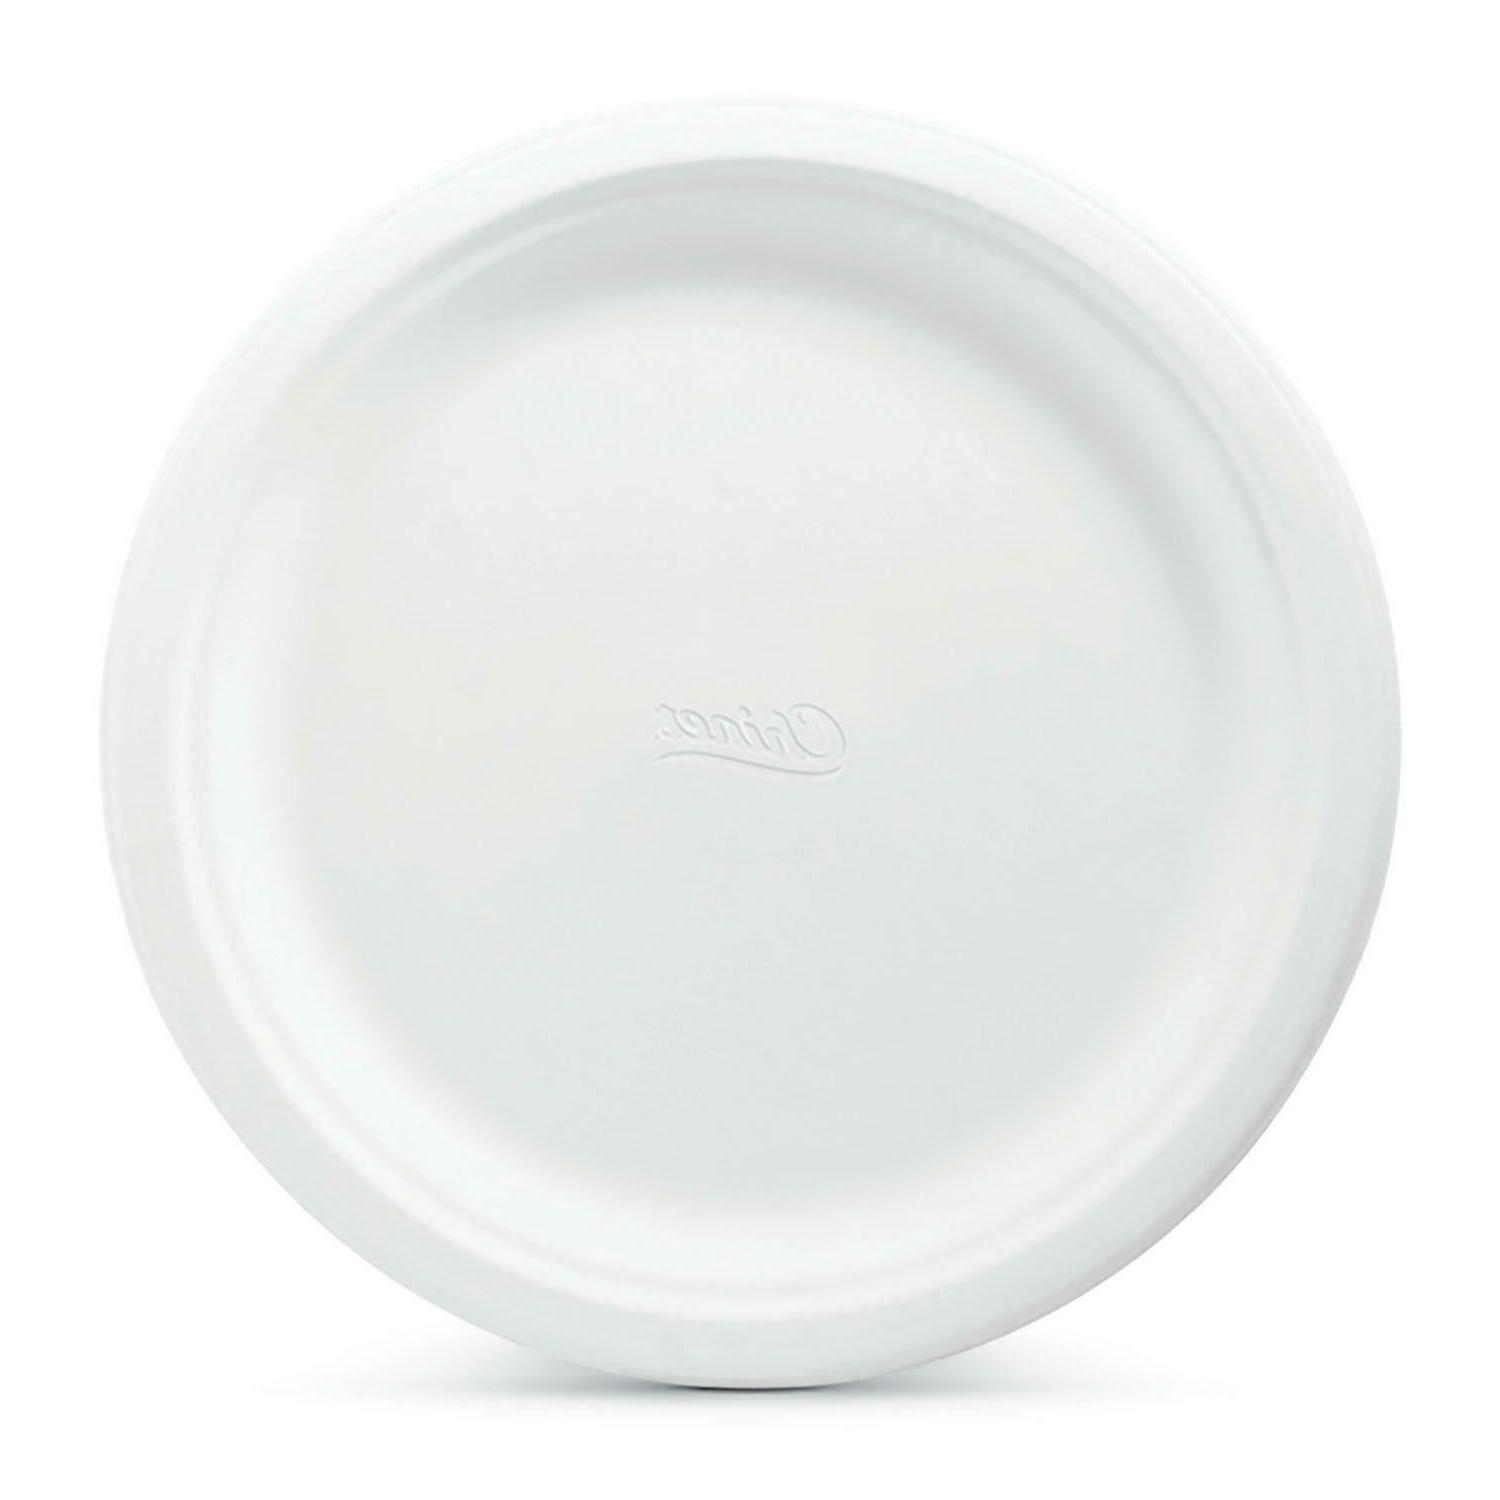 Chinet Classic Dinner Plates